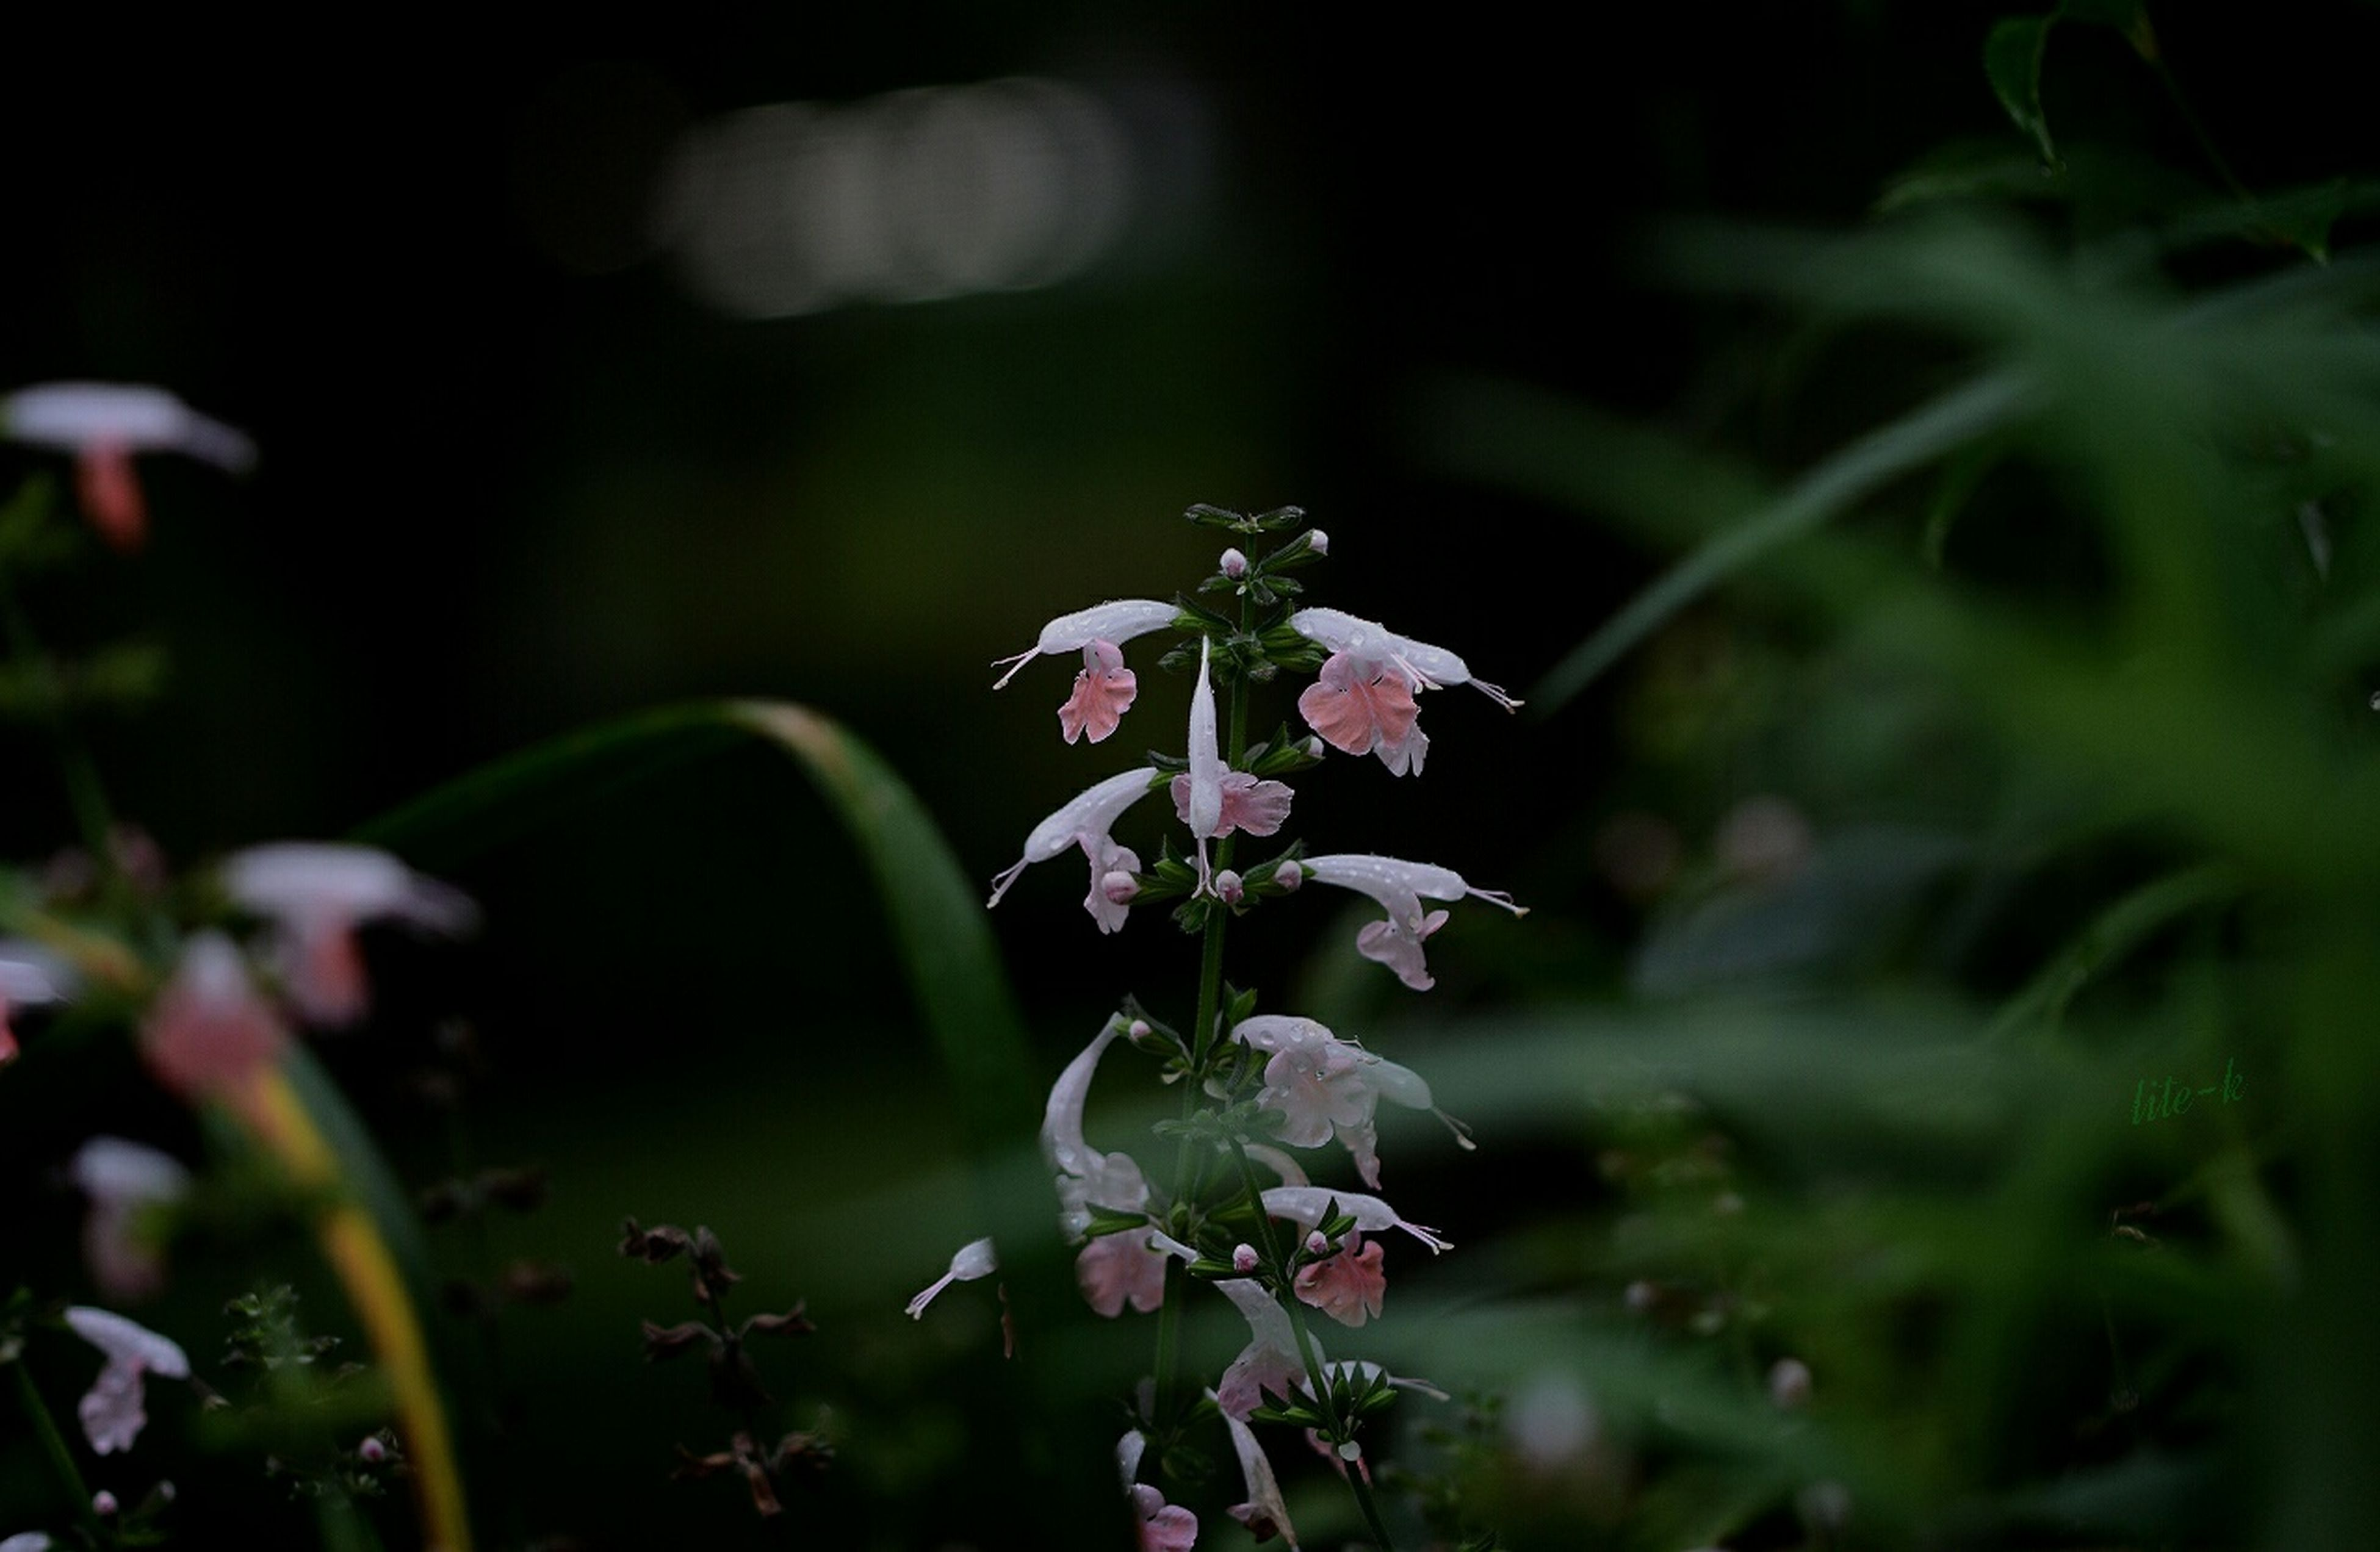 flower, freshness, growth, fragility, petal, beauty in nature, plant, focus on foreground, blooming, flower head, nature, close-up, purple, in bloom, selective focus, stem, leaf, bud, green color, outdoors